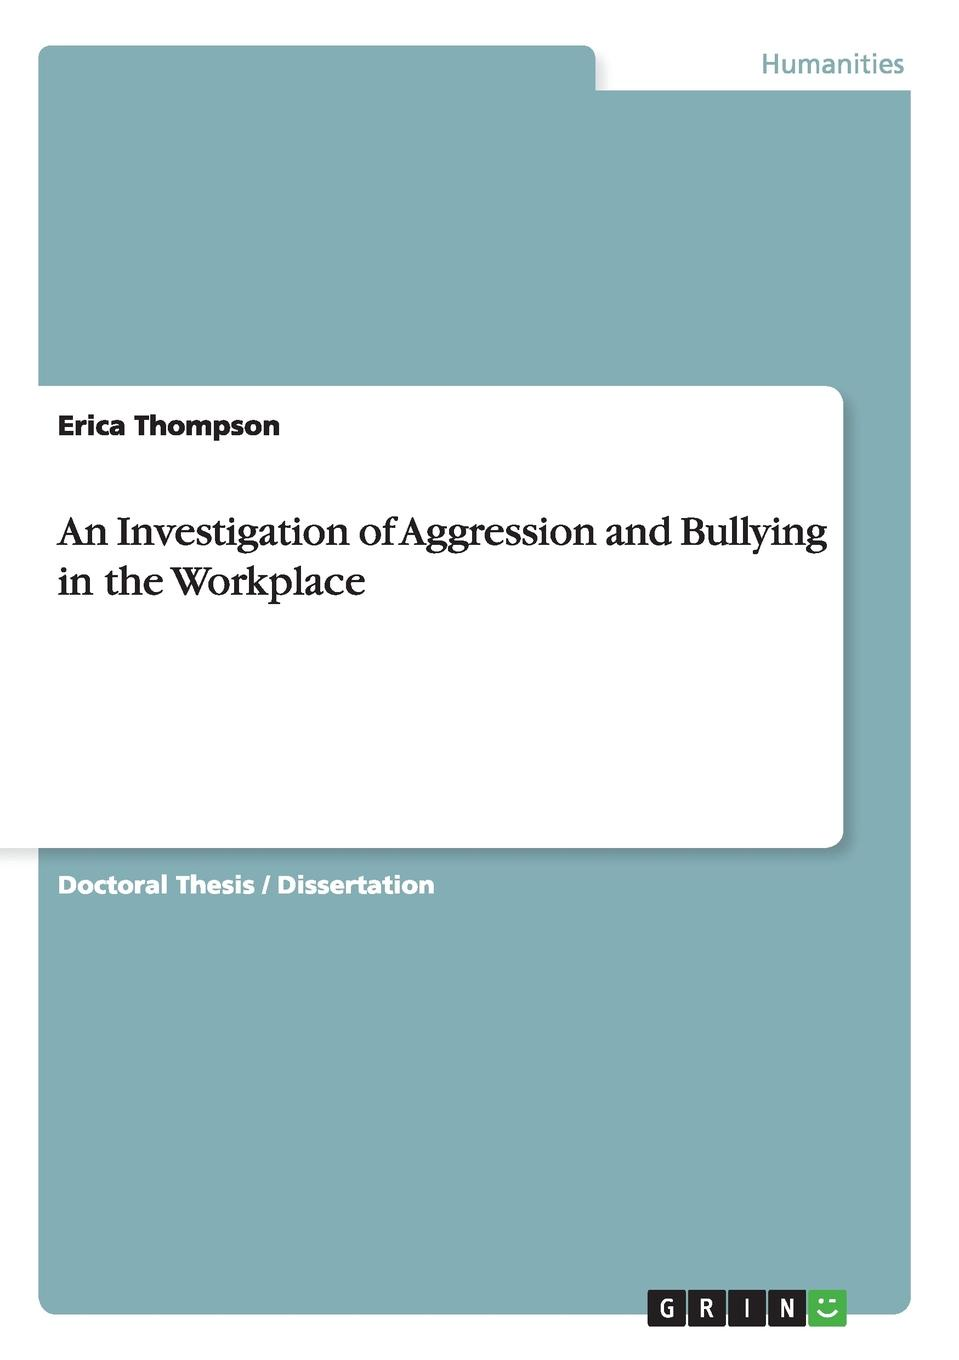 Erica Thompson An Investigation of Aggression and Bullying in the Workplace marc rohde bullying als gewaltphanomen an schulen